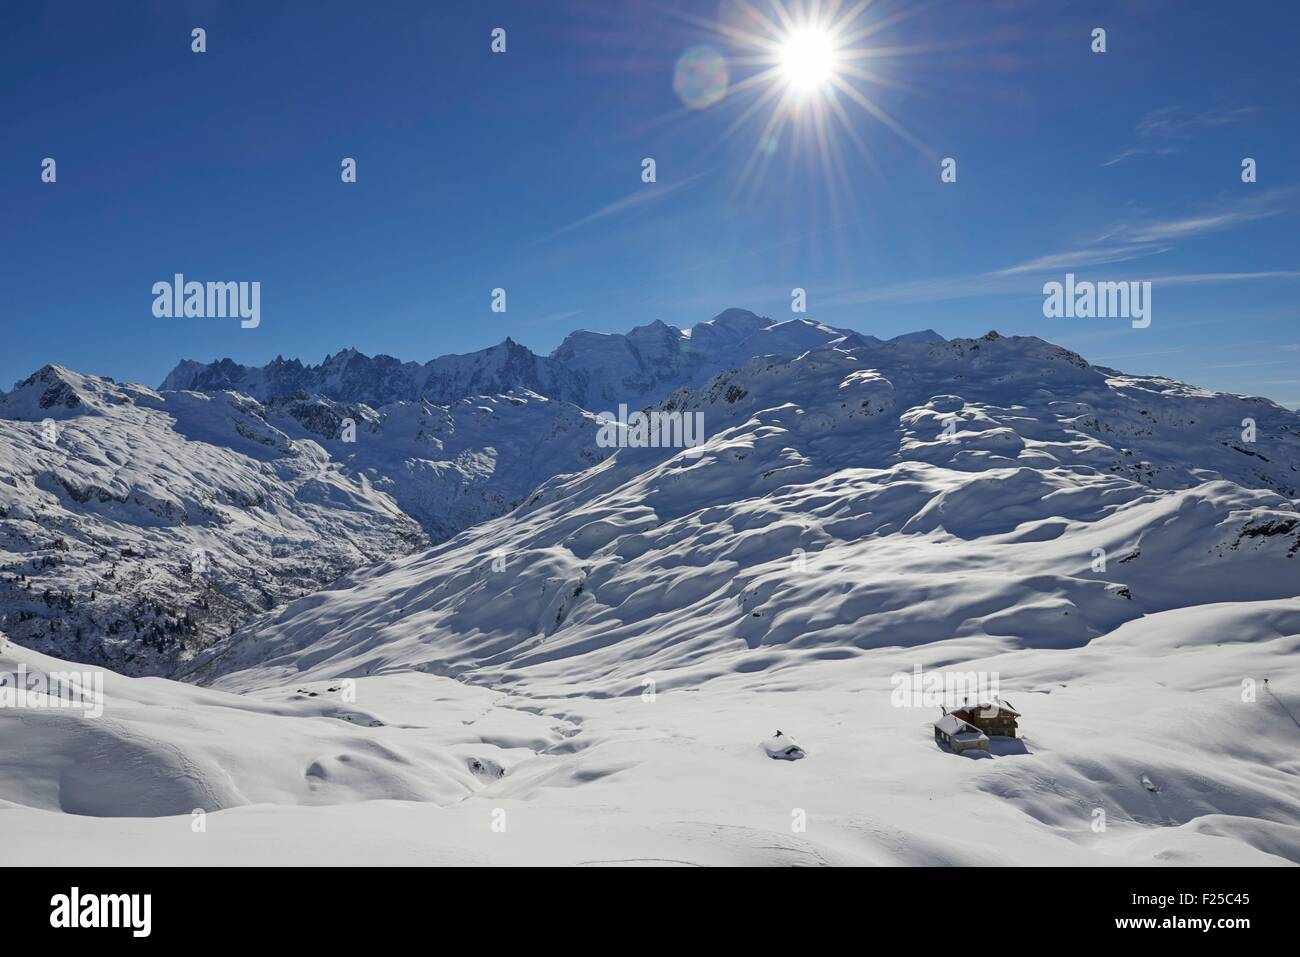 France, Haute Savoie, Passy, the Anterne pass, Fis, and the Mont Blanc range - Stock Image